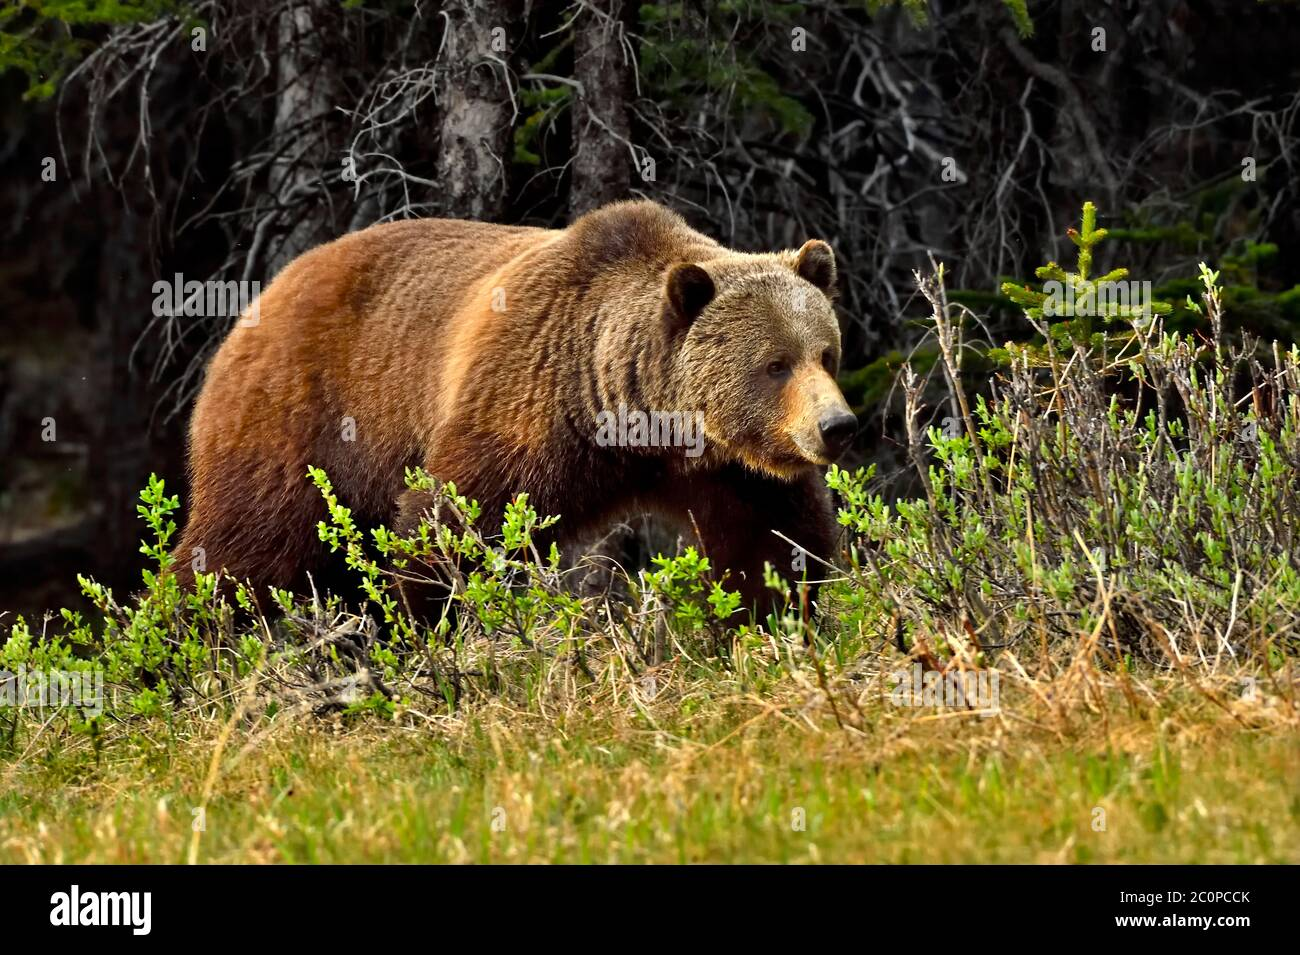 """An adult grizzly bear """"Ursus arctos"""", foraging along a wooded area in rural Alberta Canada Stock Photo"""